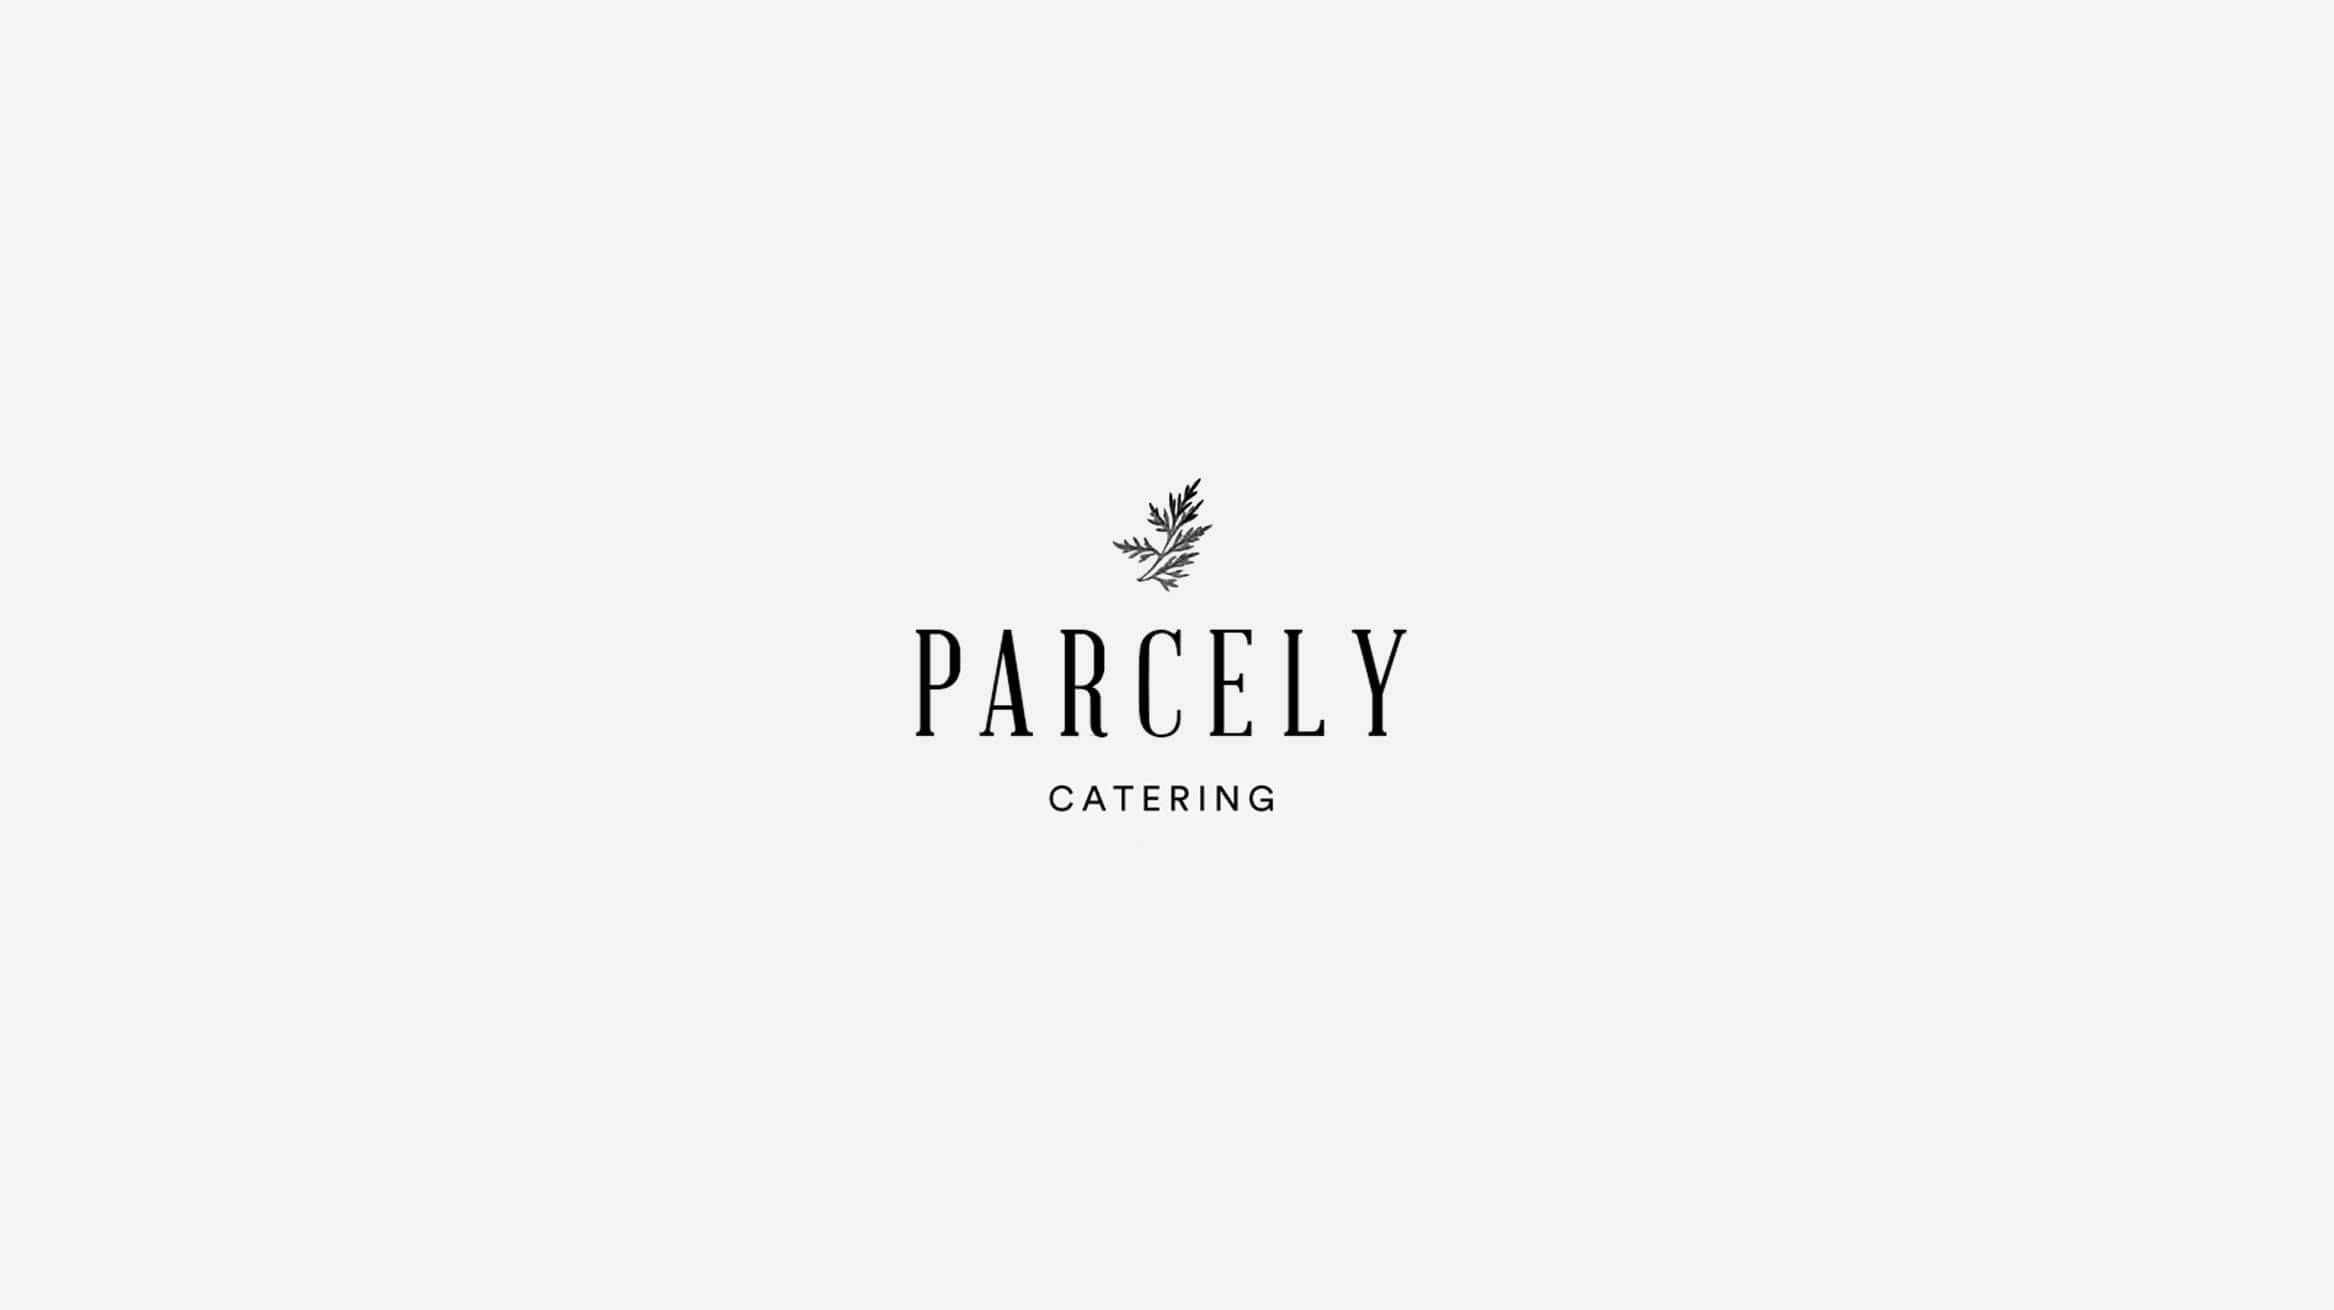 Parcely-Catering-Wordmark_MR